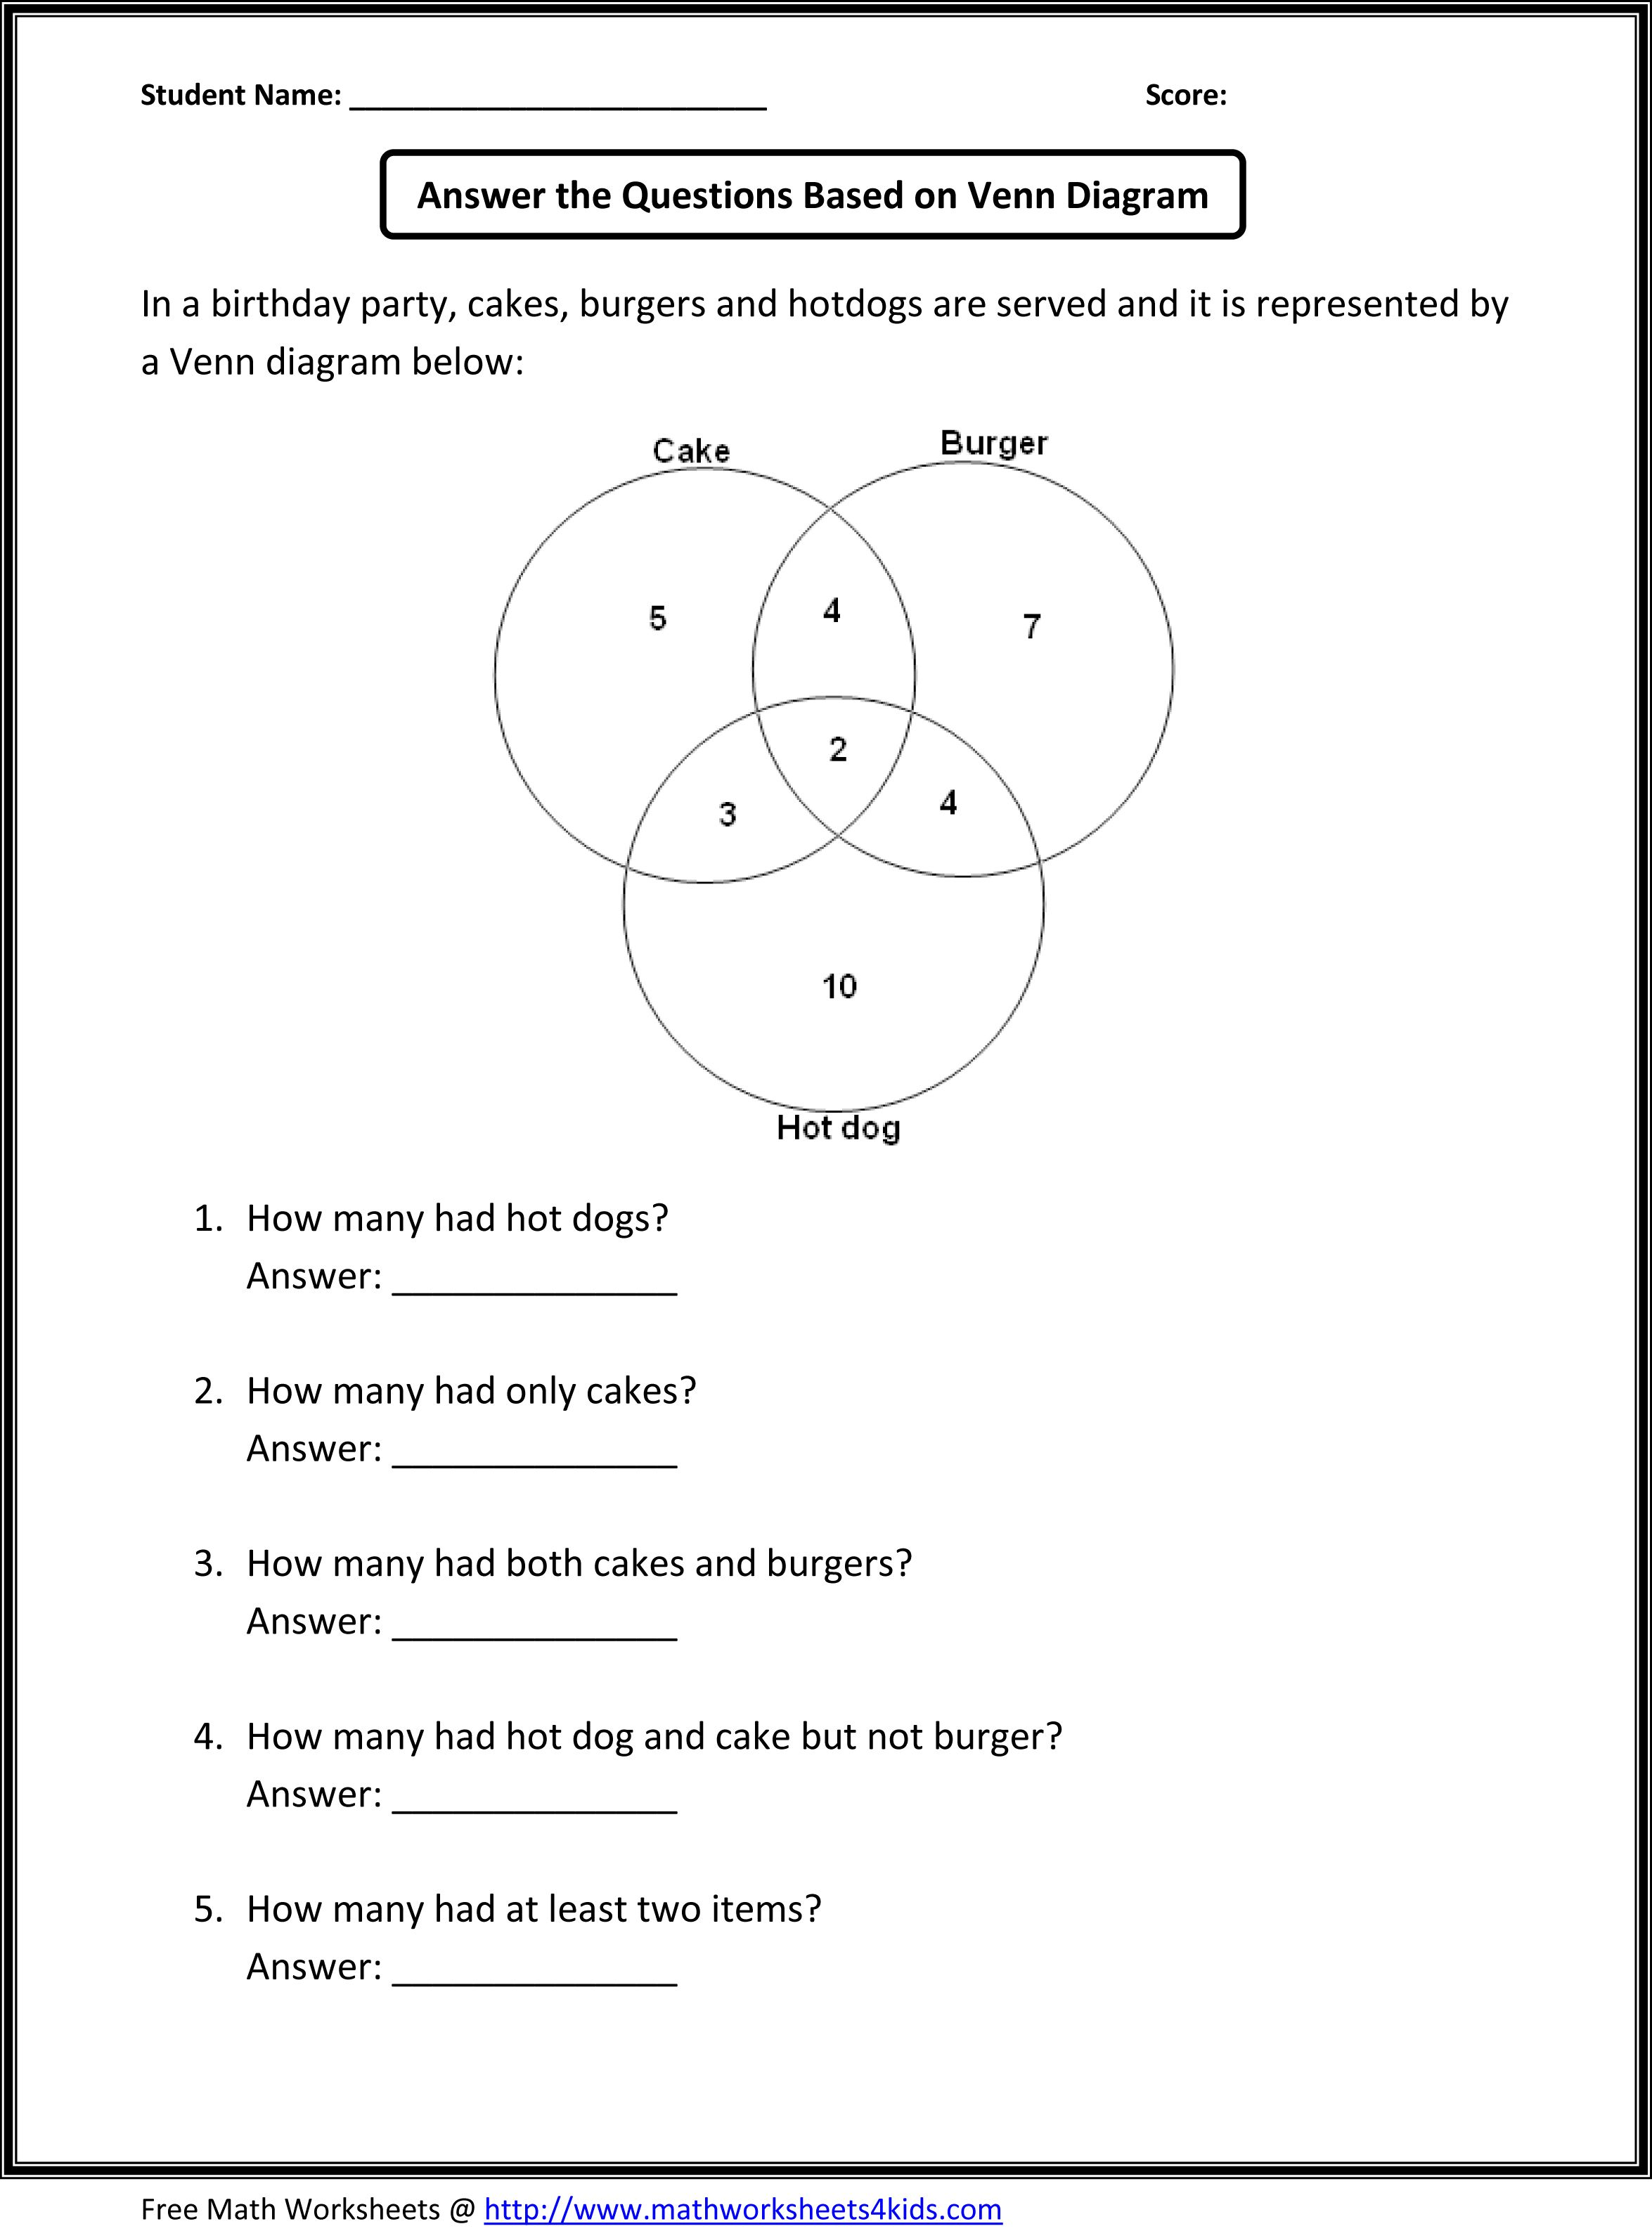 Venn Diagram Worksheets Word Problems Using Two Sets – Math Worksheets for Grade 3 Word Problems